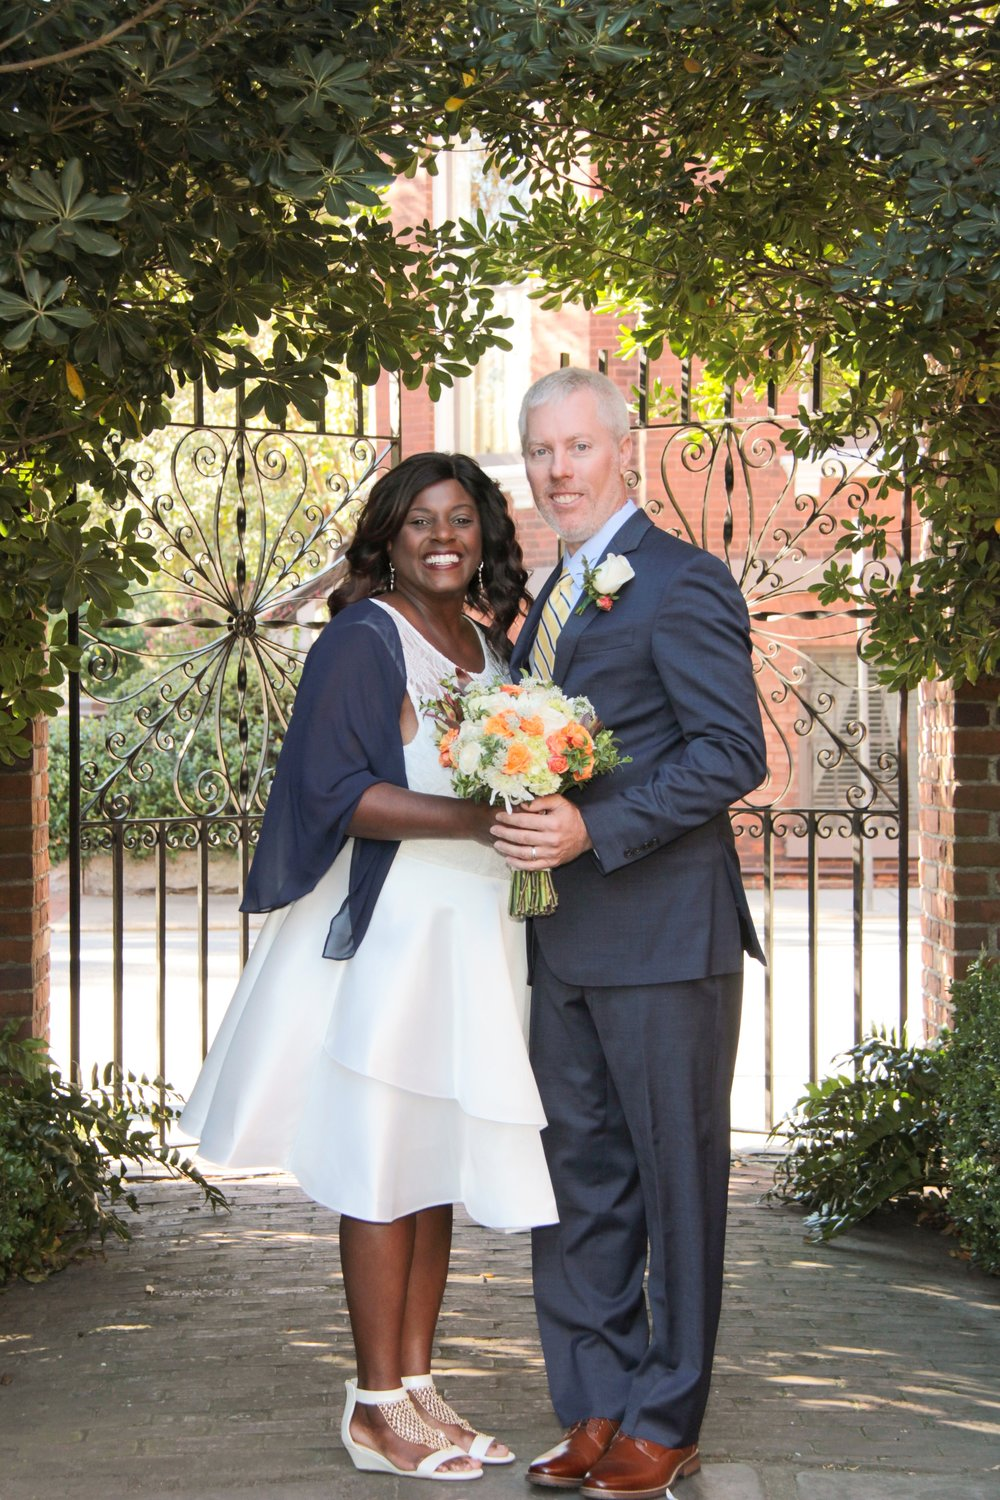 Savannah Wedding Packages Davenport house garden